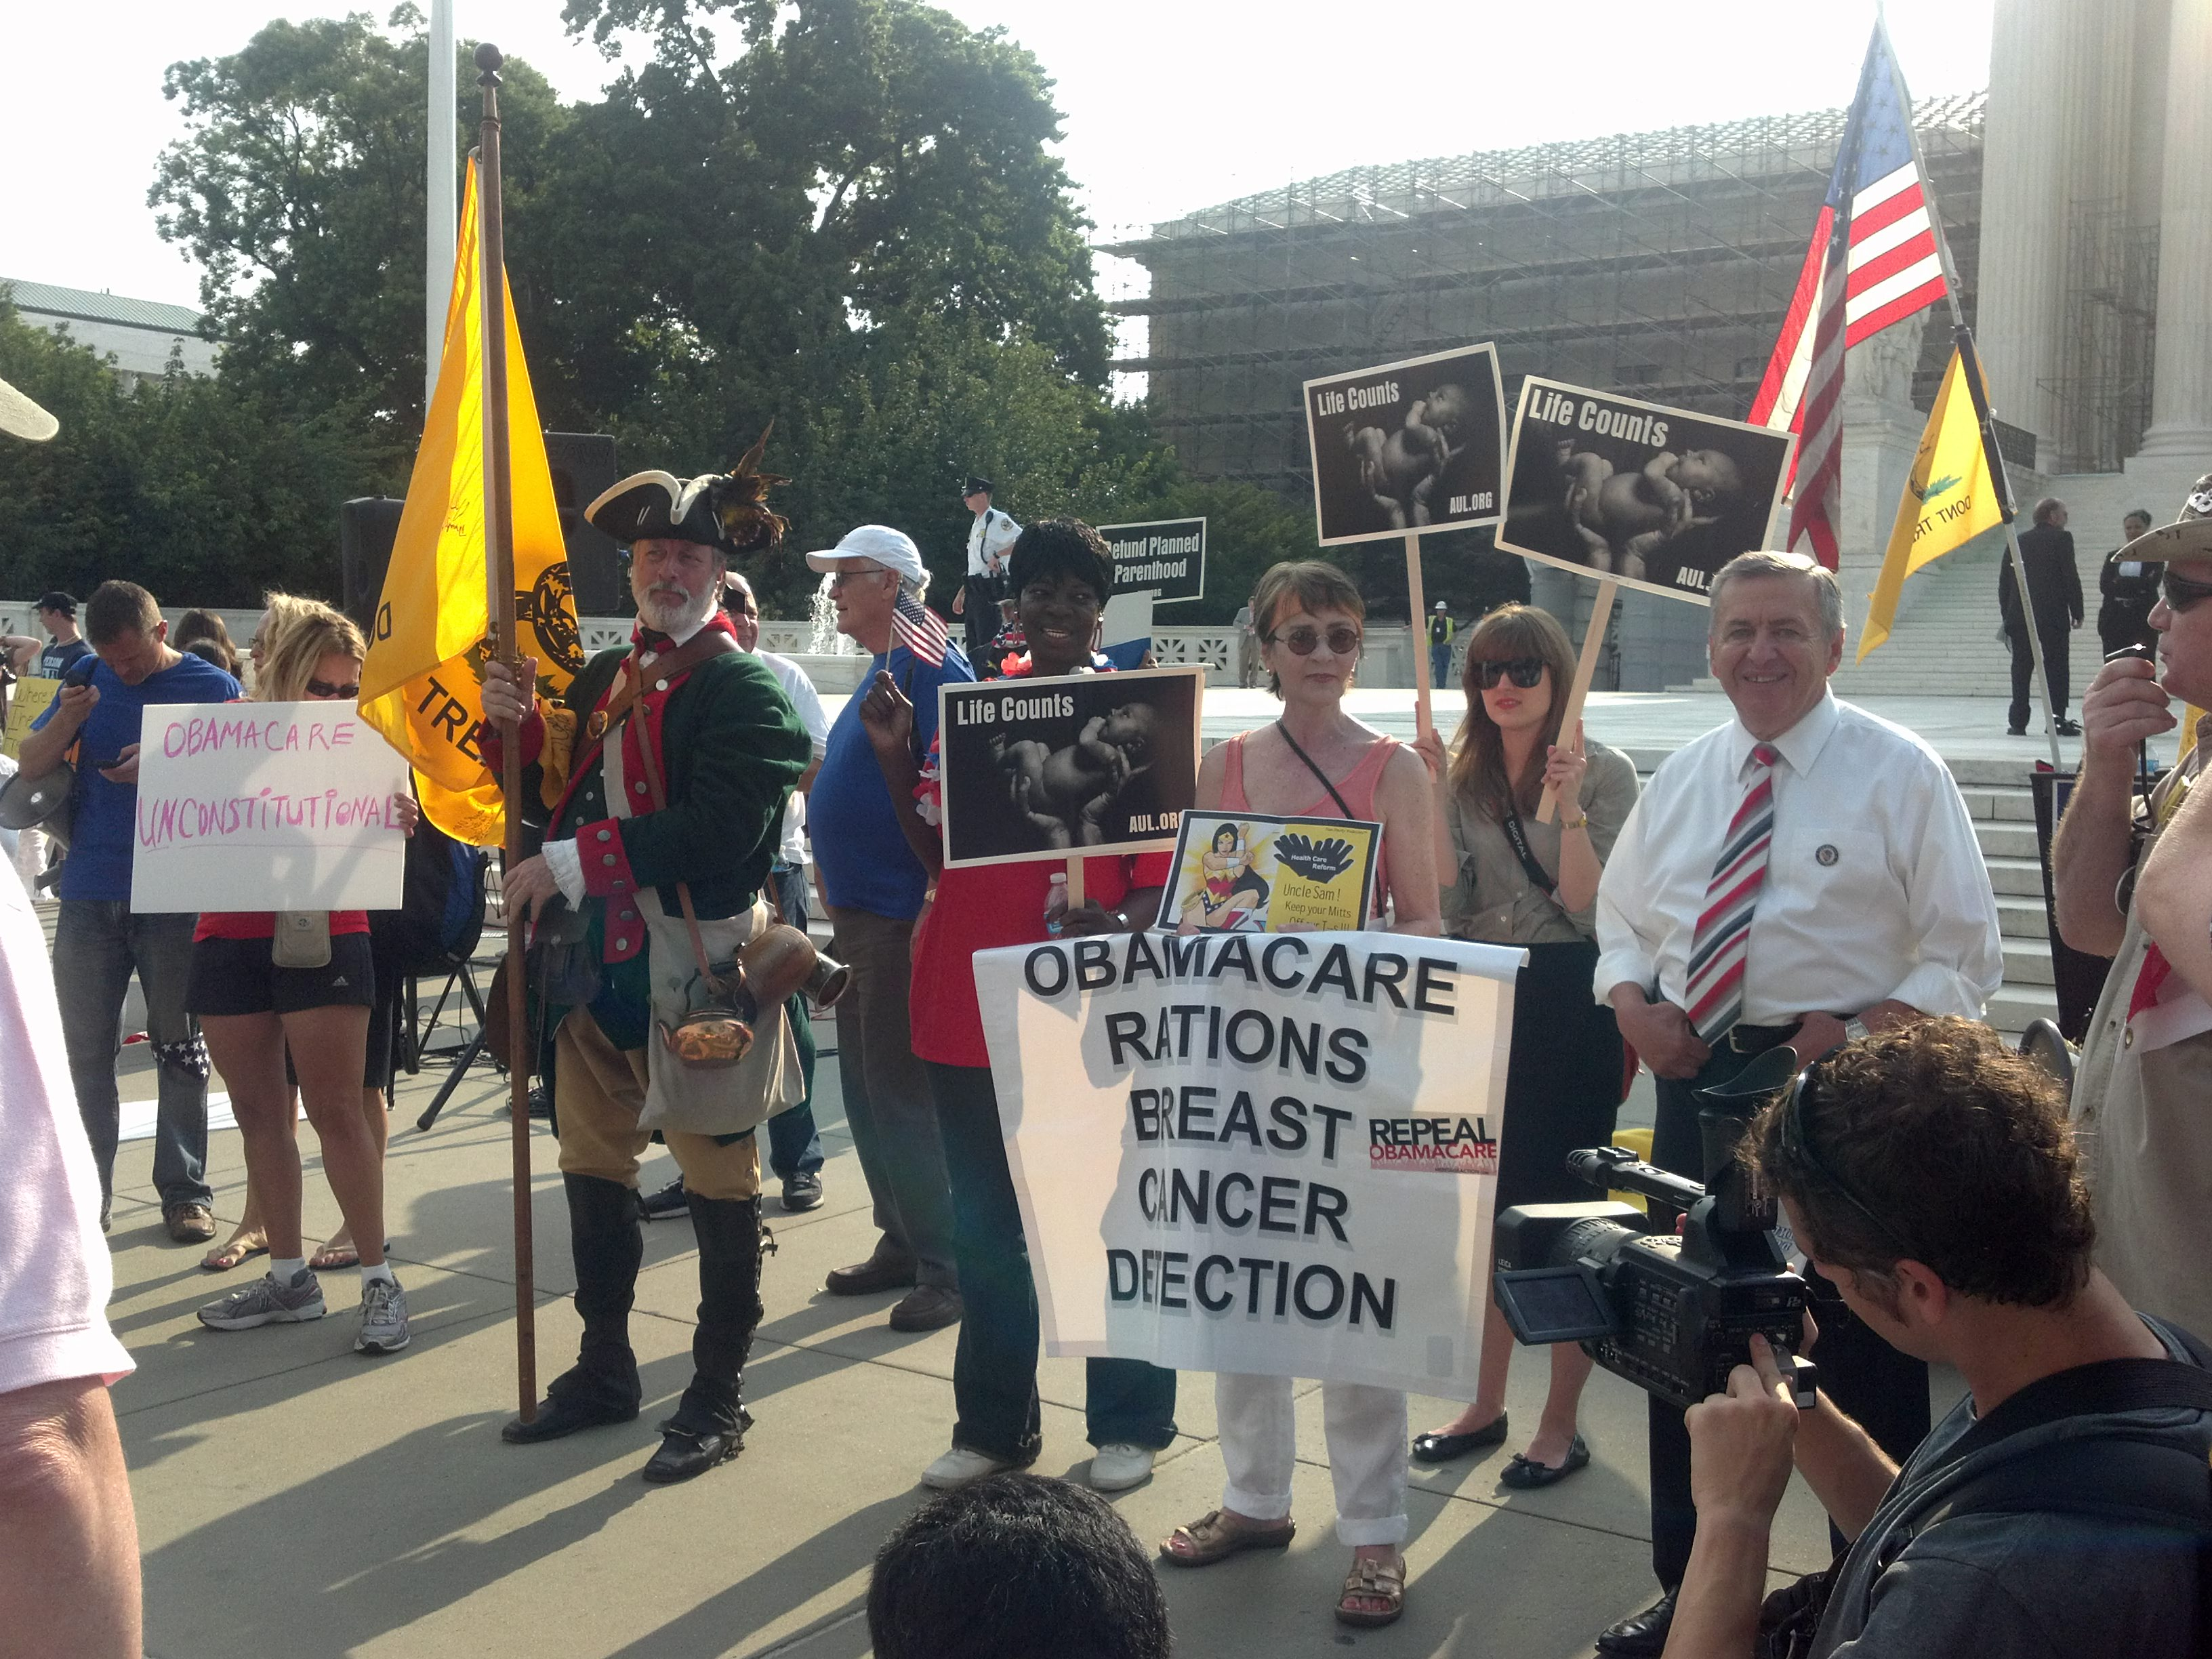 Breaking: Conservatives Outnumber Obamacare Supporters Outside Supreme Court